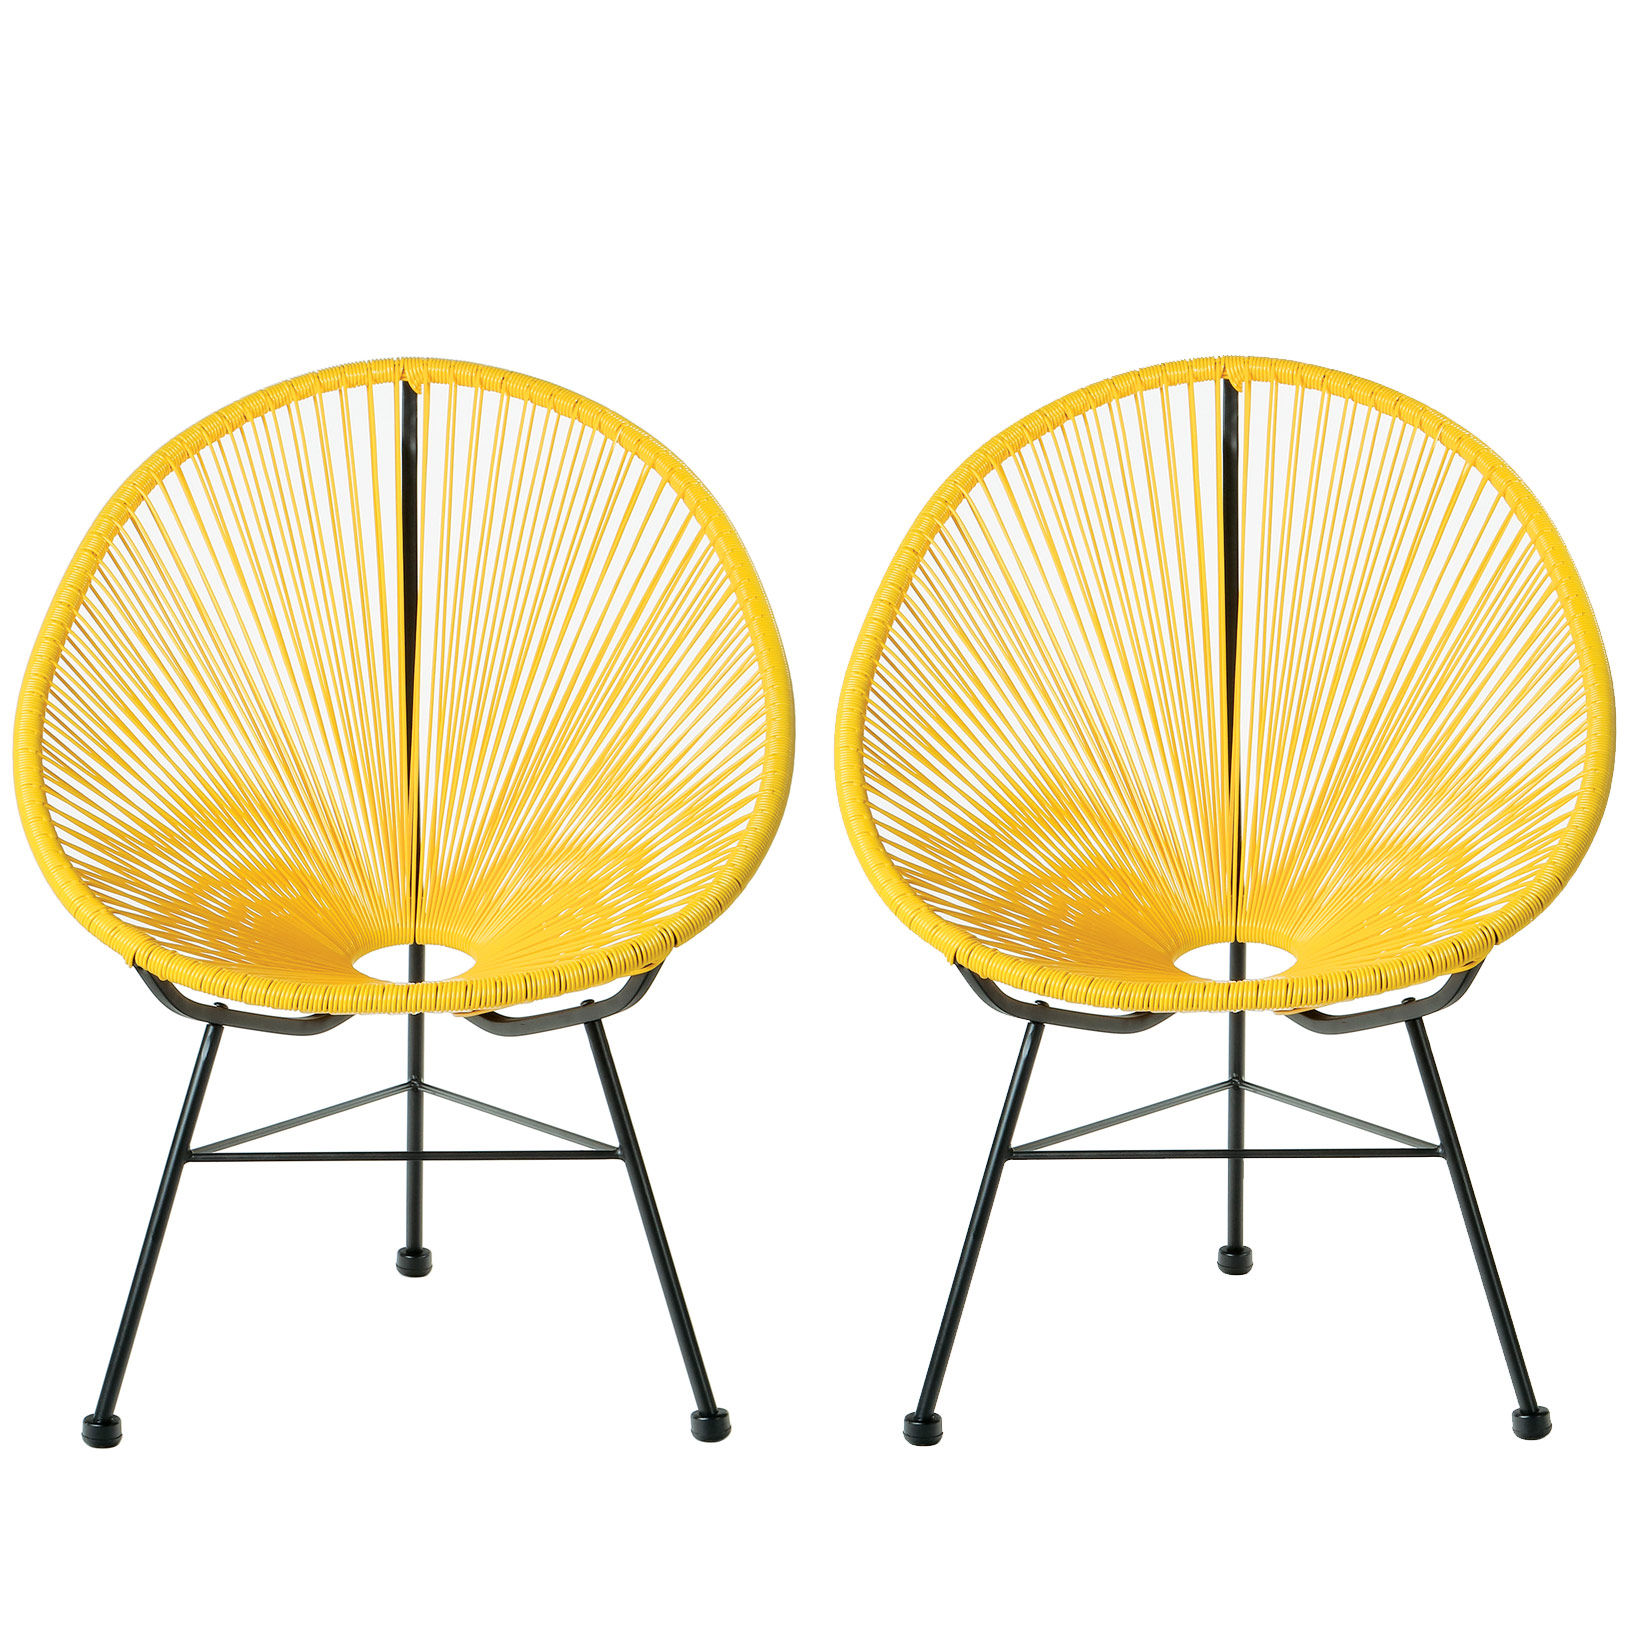 Acapulco Lounge Chair, Yellow, Set of 2